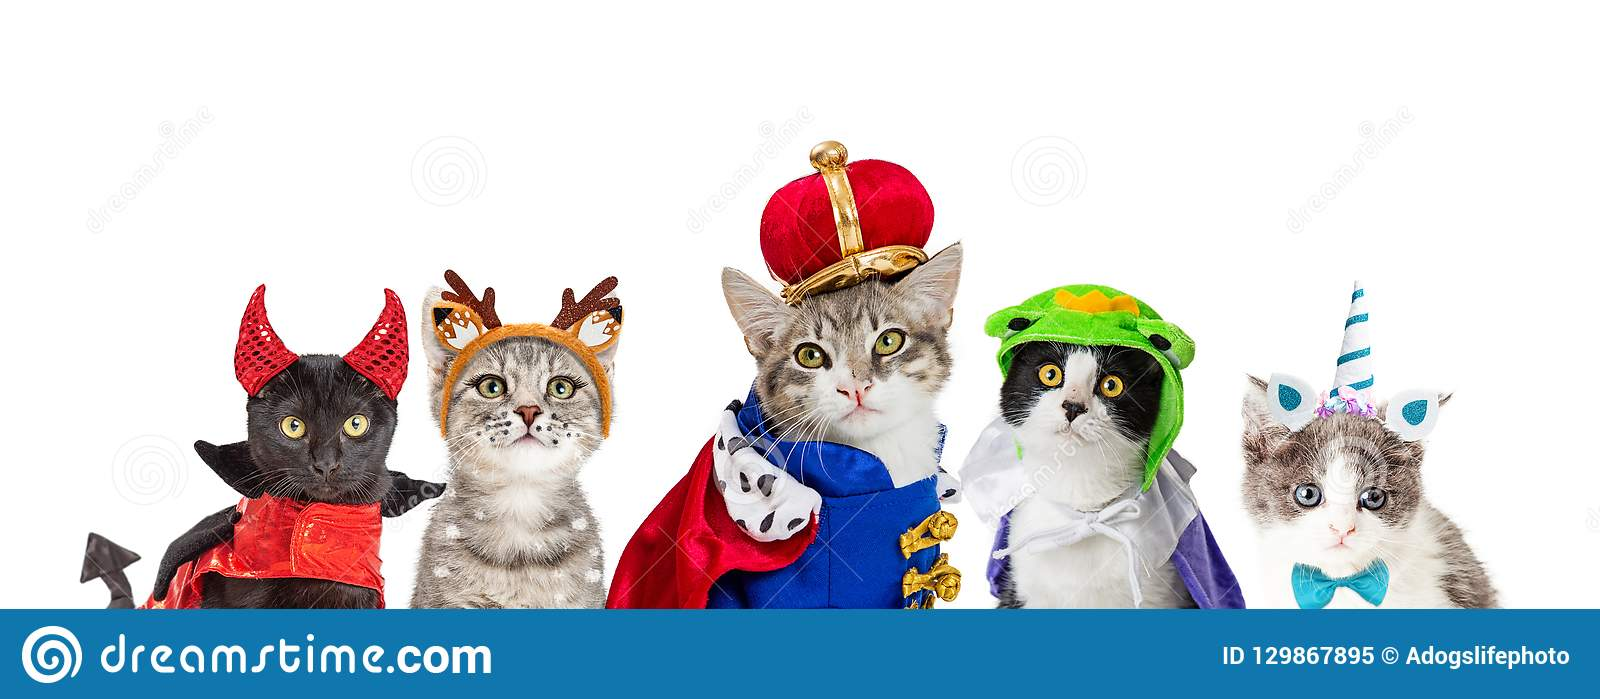 cat in king halloween costume stock image - image of copy, kitten